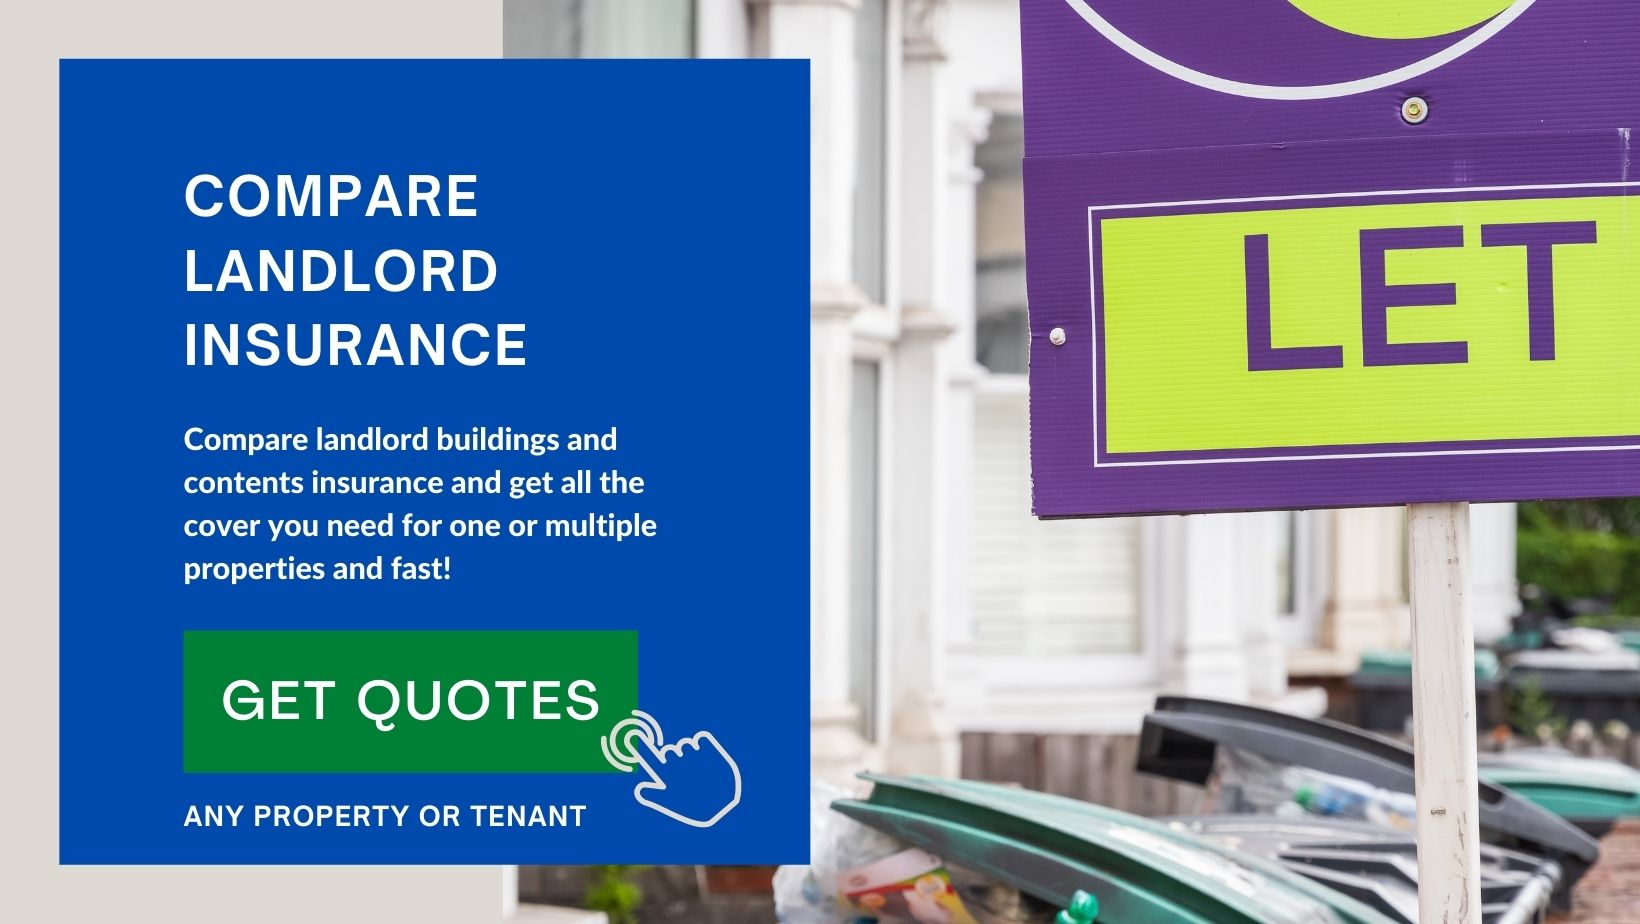 Landlord Insurance for a Limited Company